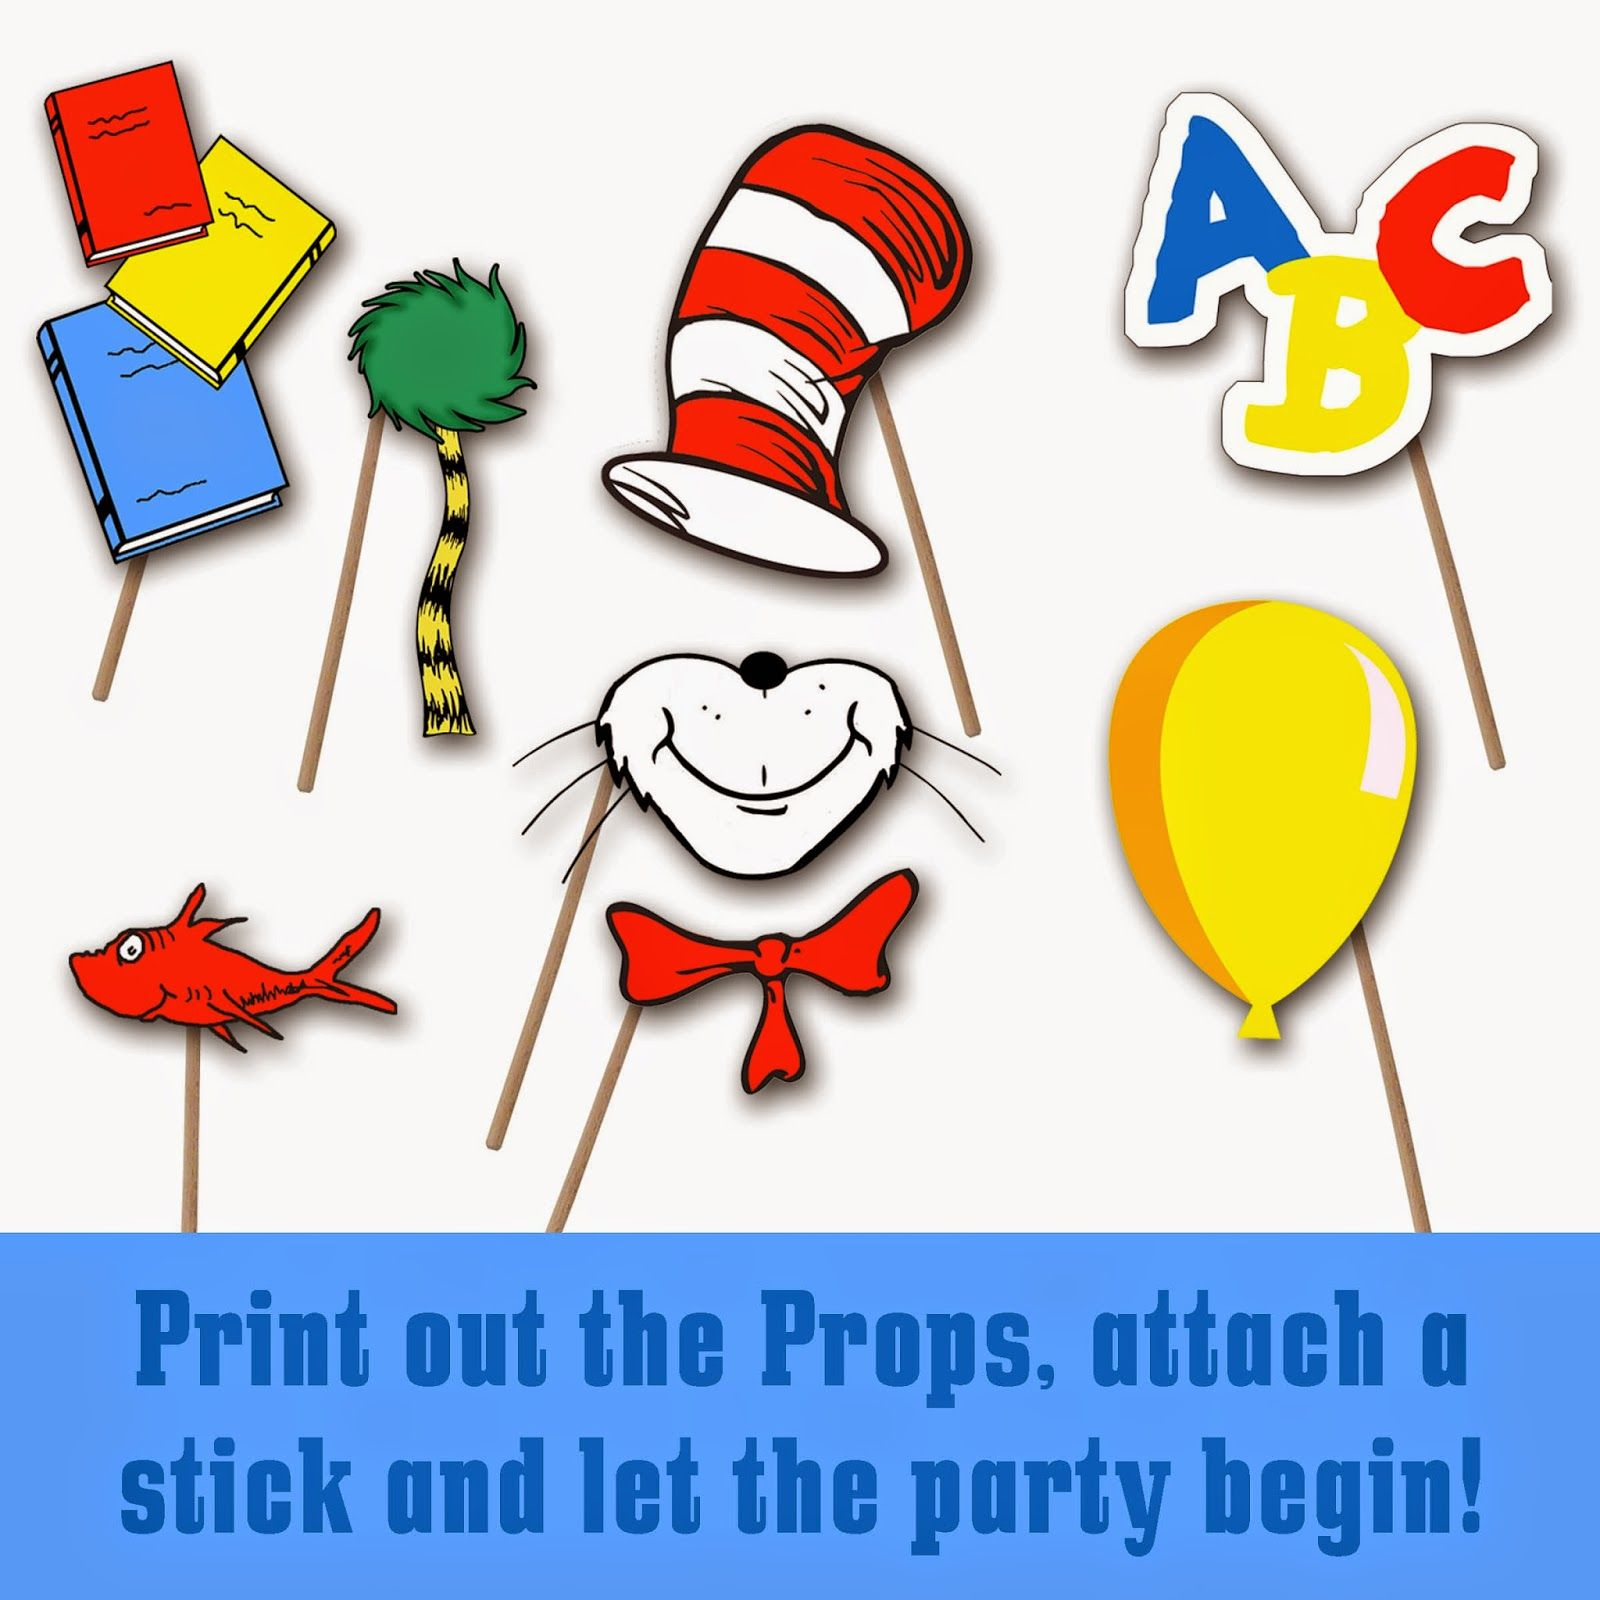 Growing Up Dr Seuss Books Were Always Some Of My Favorites And Now My Kids Love Them As Well These Phot Seuss Crafts Dr Seuss Week Dr Seuss Birthday Party